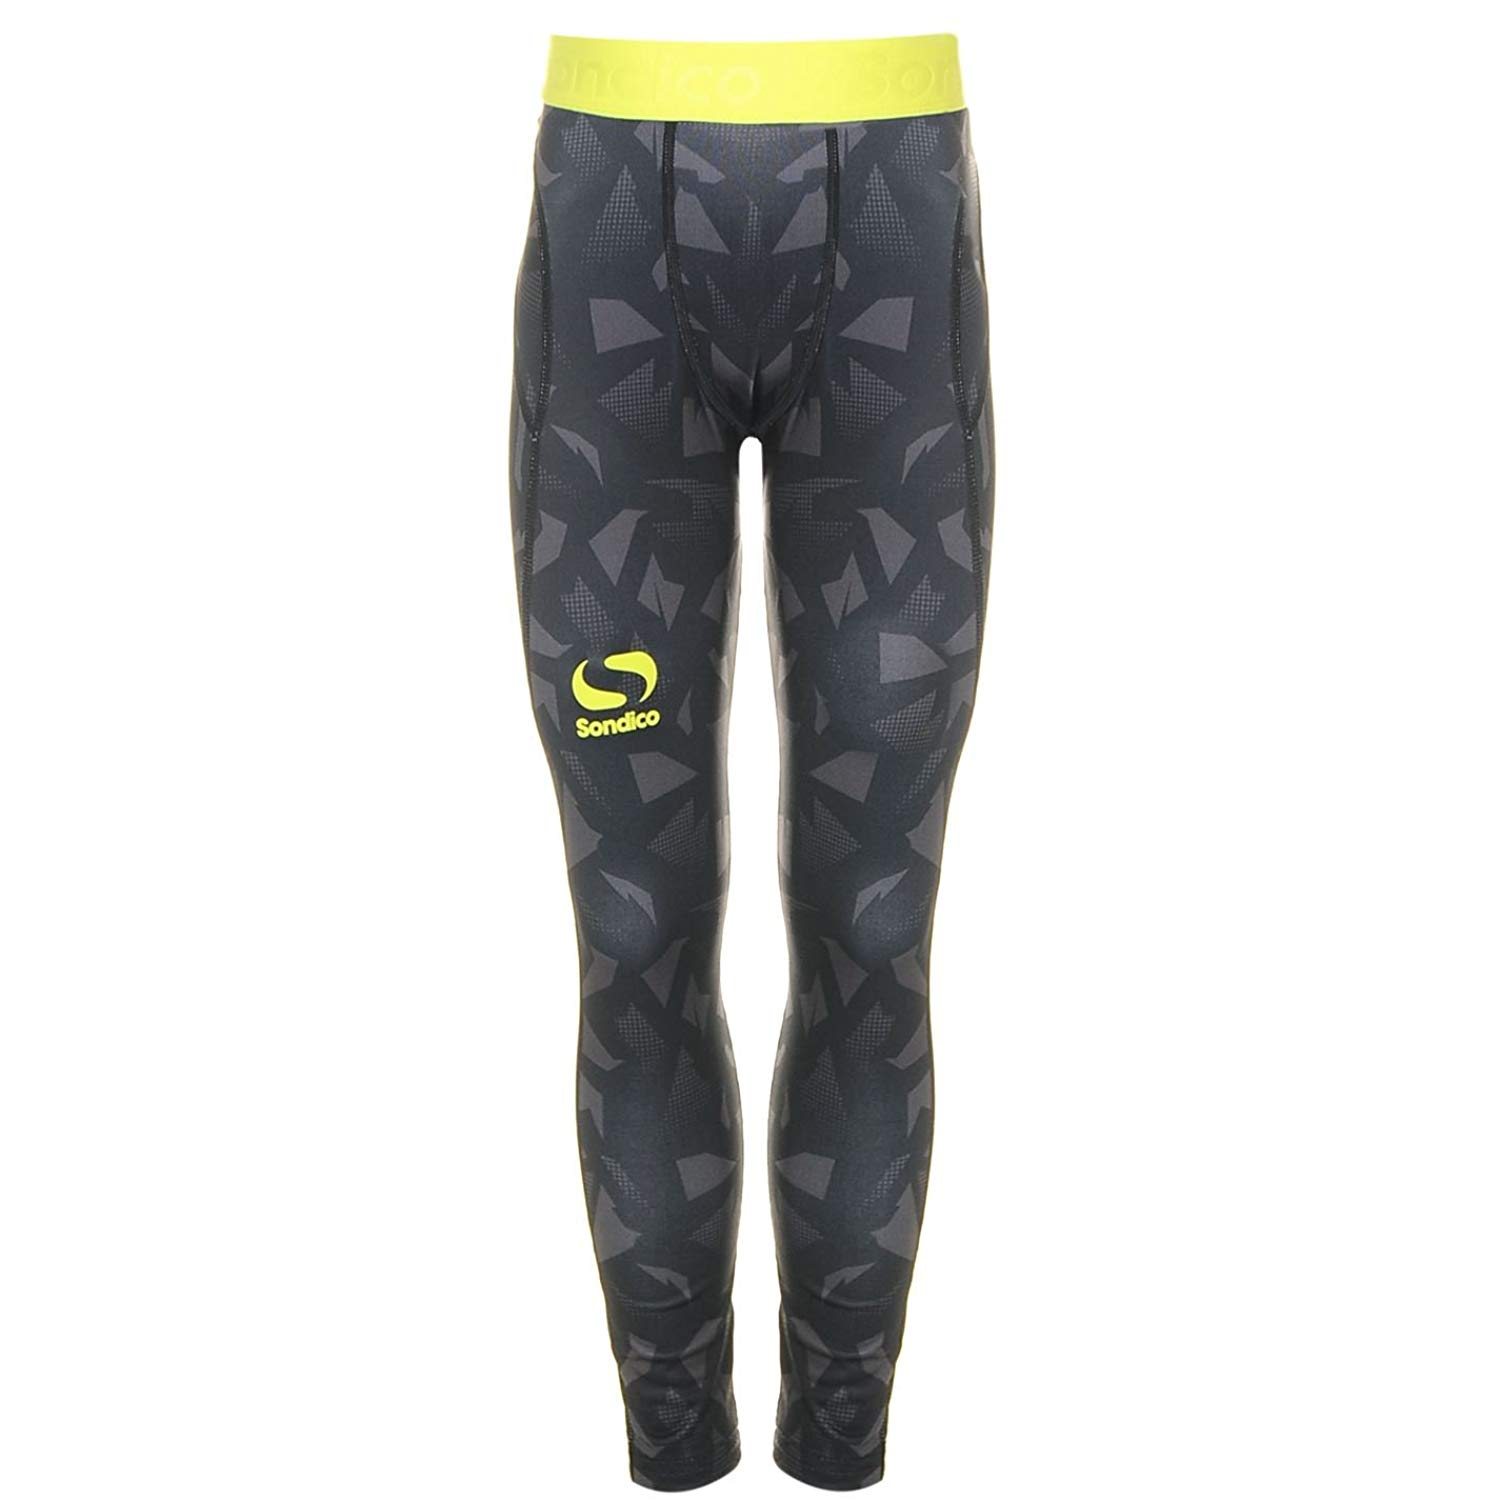 0984d6965b Get Quotations · Sondico Kids Boys Blaze Tights Junior Baselayer Pants  Trousers Bottoms